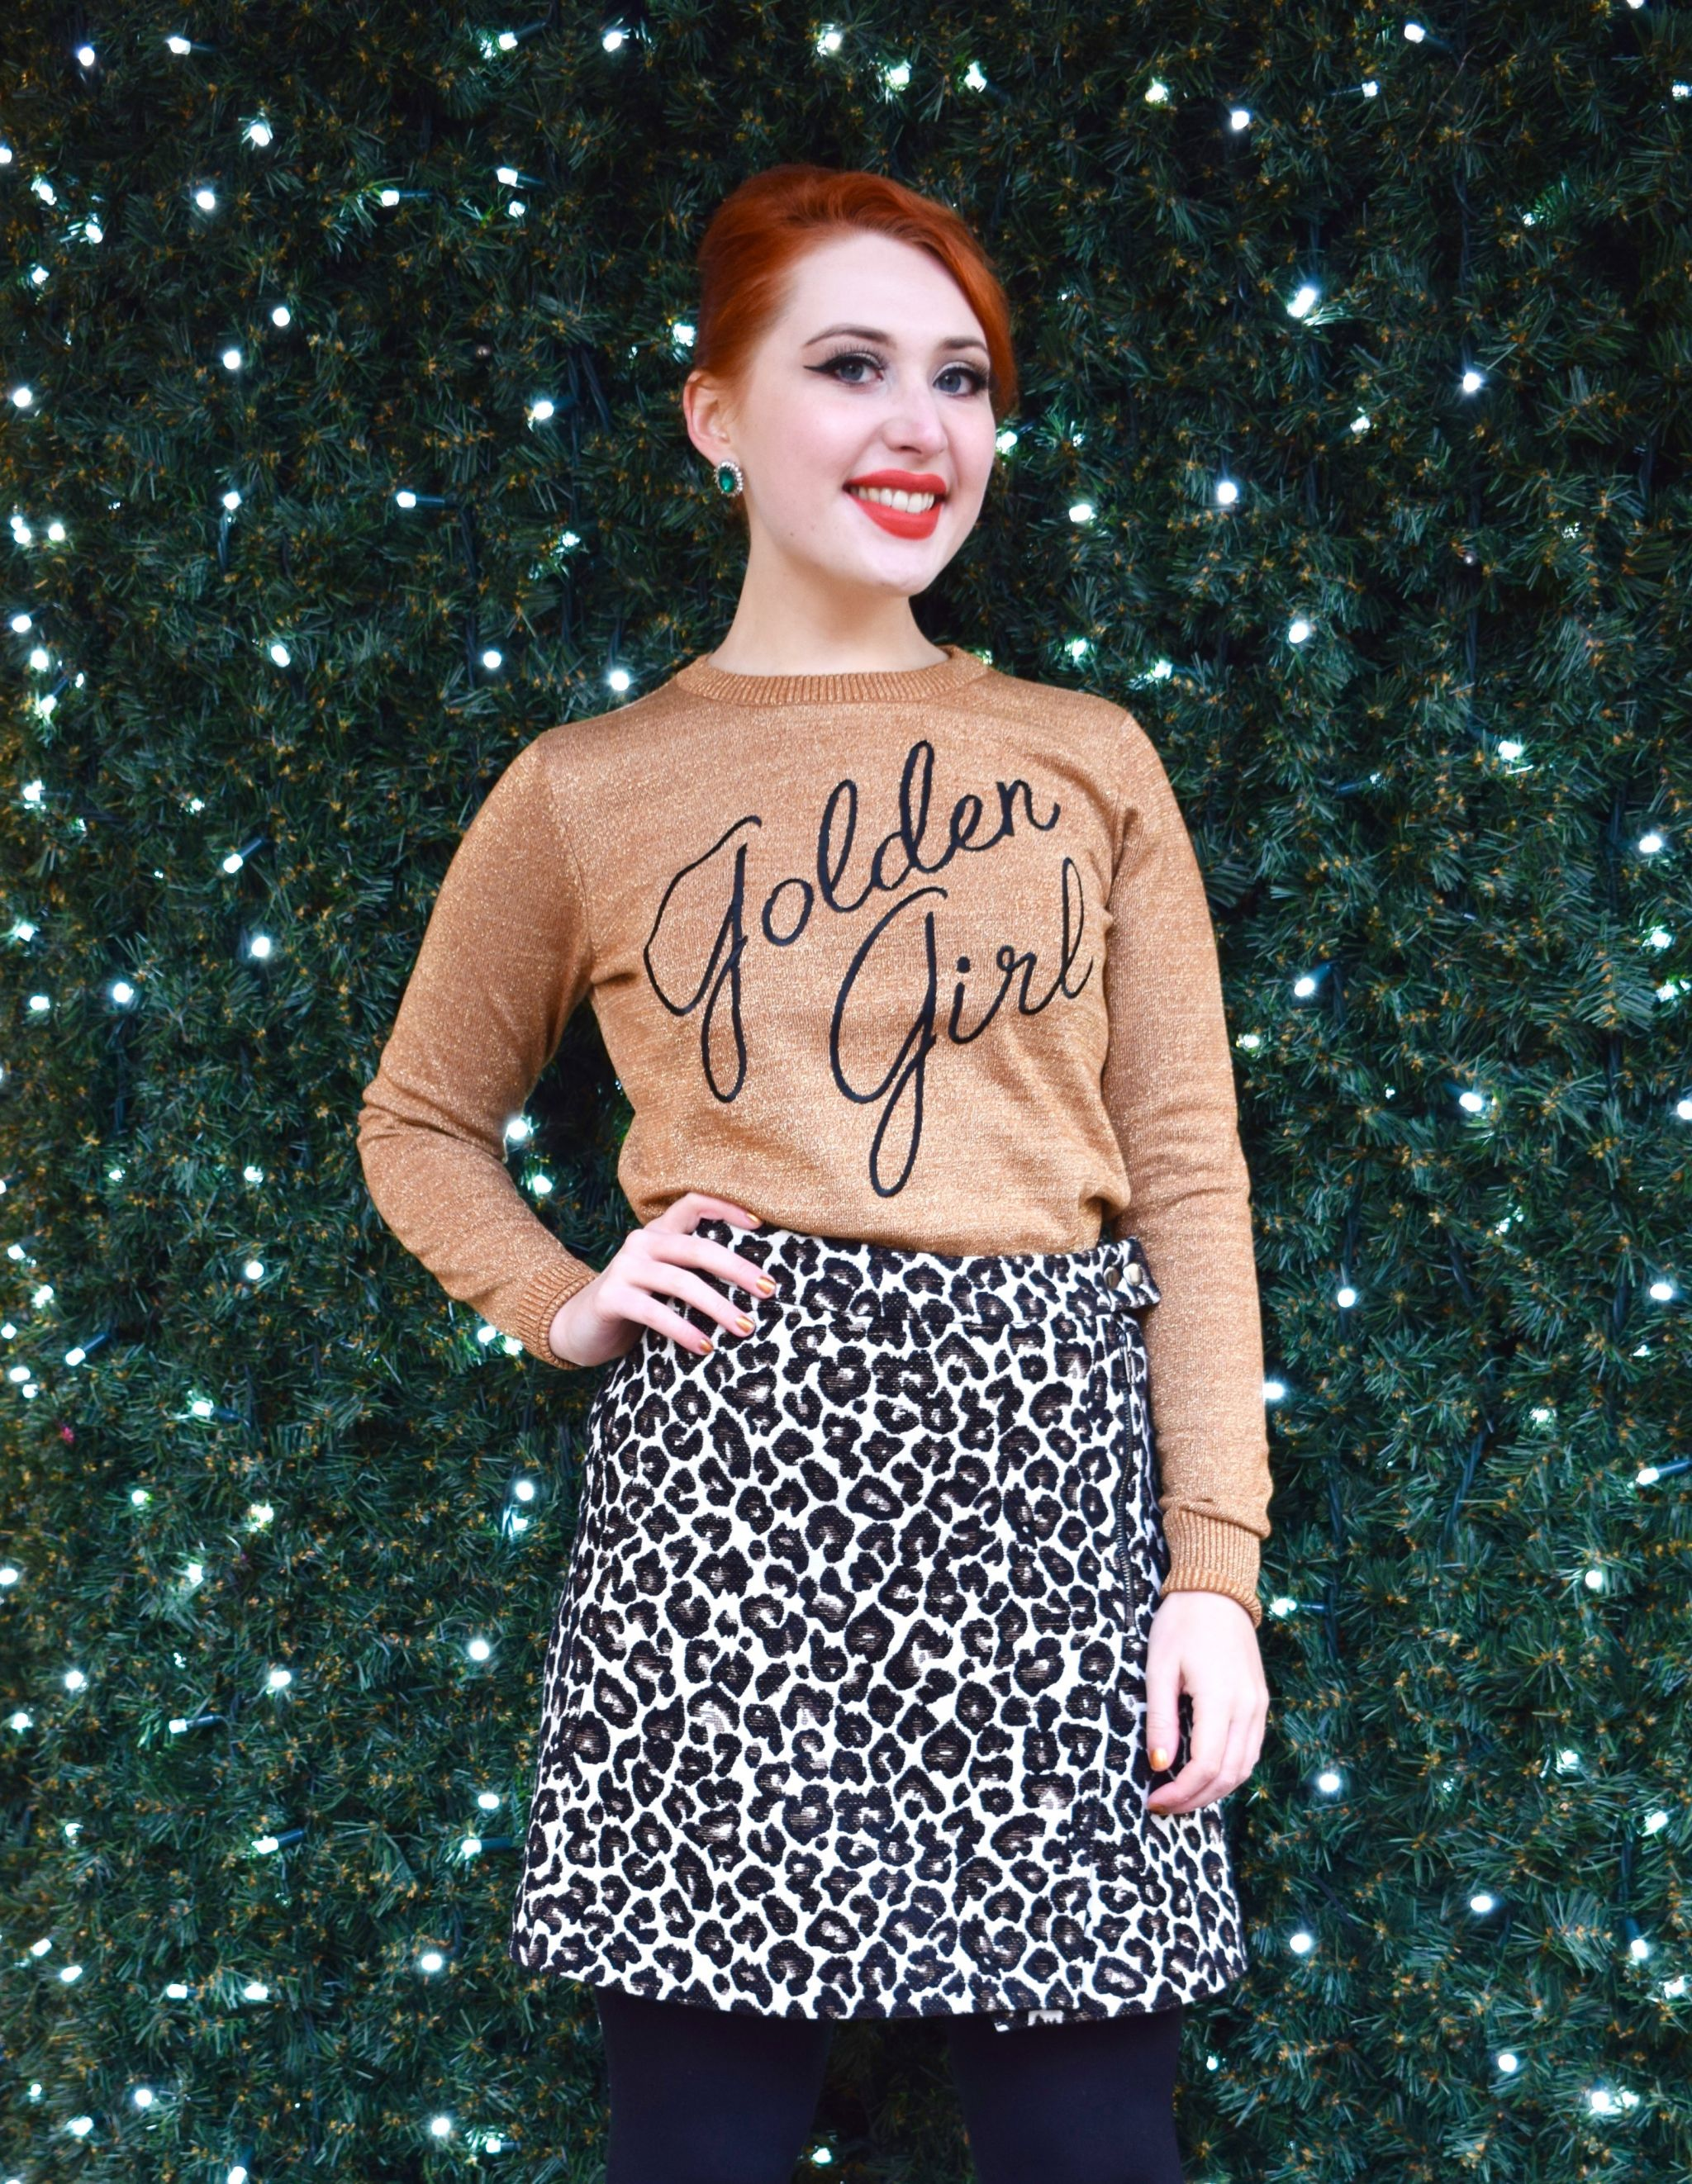 blogger Twenty-Something City wears Golden Girl jumper from Joanie Clothing in Manchester